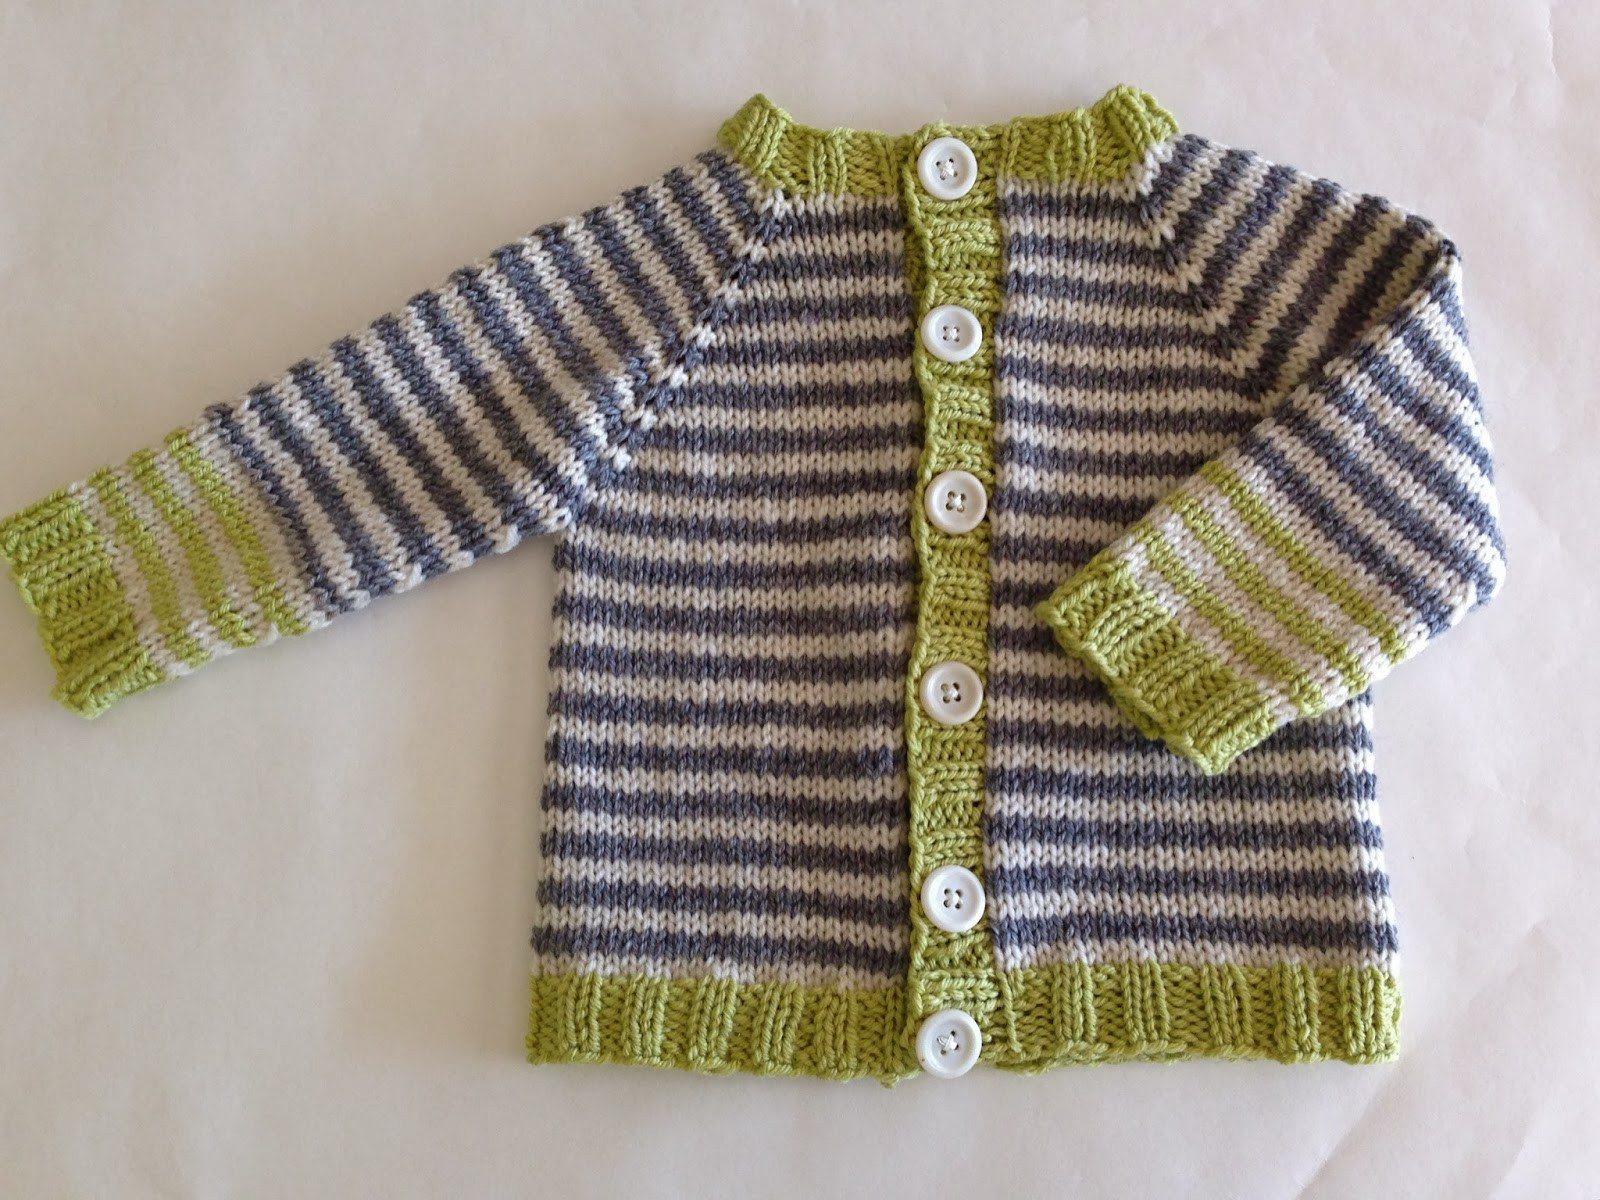 Baby Sweater Patterns Best Of totally Free totally Adorable Baby Cardigan Knitionary Of Beautiful 41 Images Baby Sweater Patterns